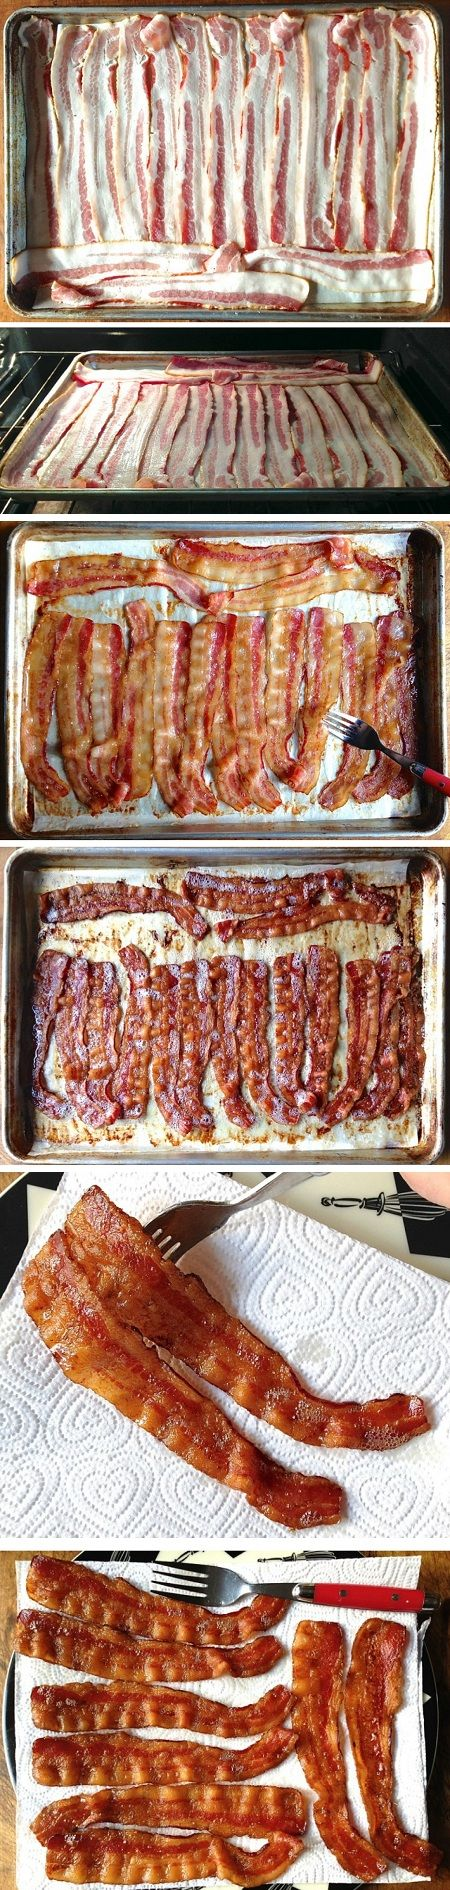 Step by step bake your bacon Preheat the oven to 350°F. If you're baking some other breakfast dish, it'll probably already be at this temperature. And if you're baking something that calls f…